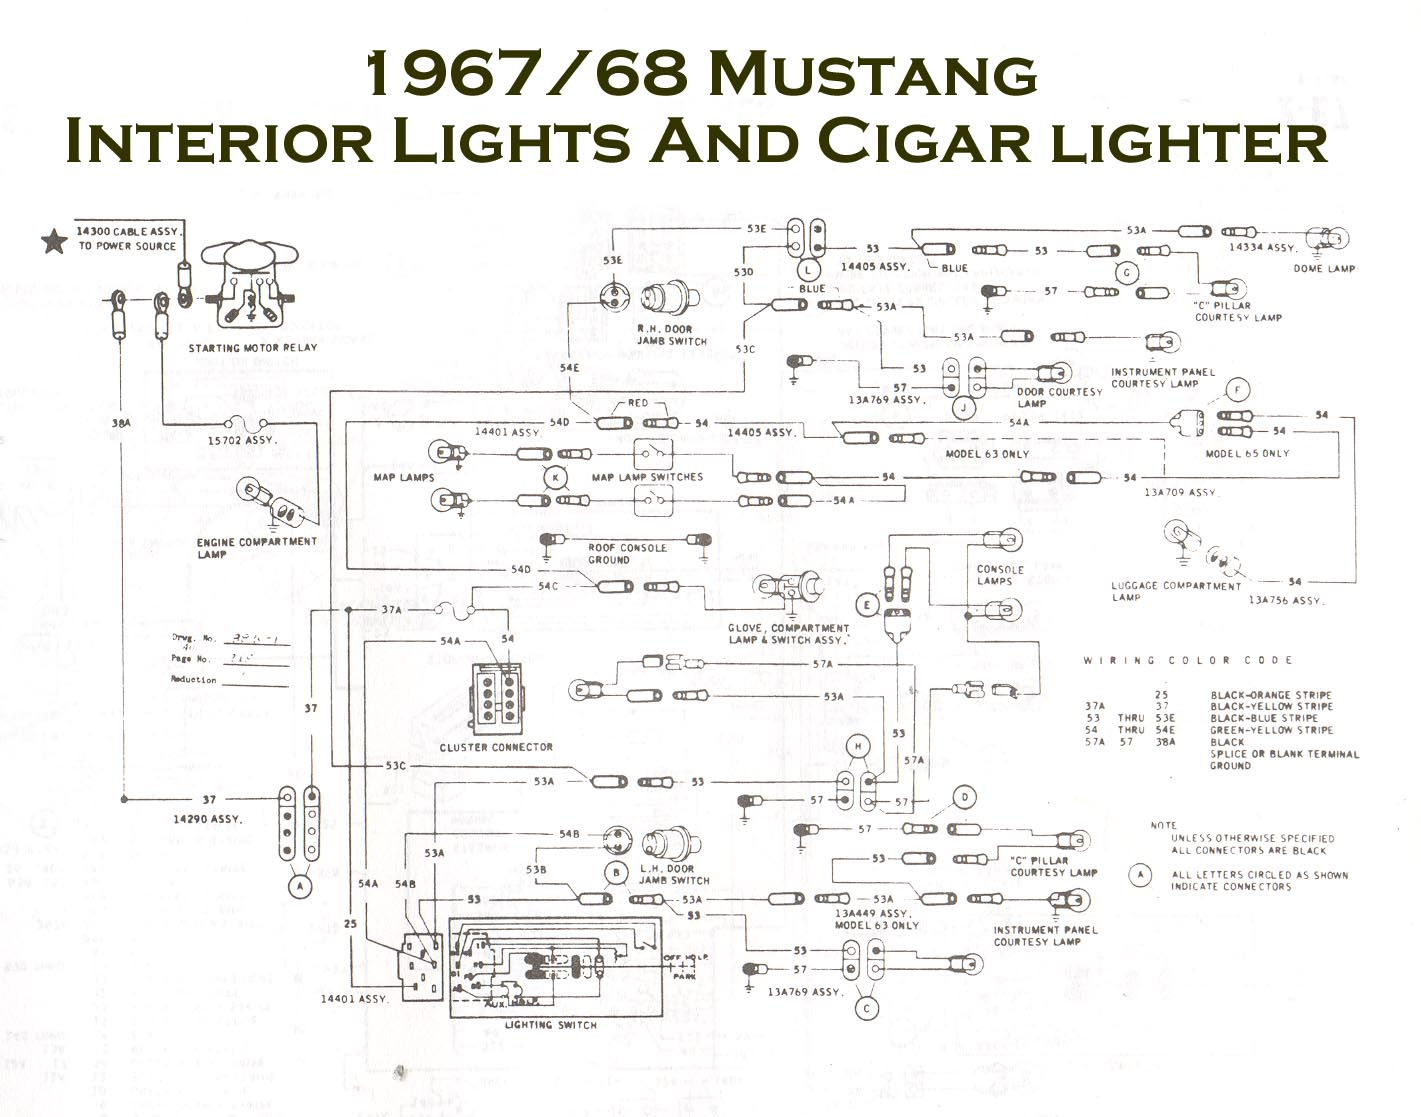 Lamp Wiring Diagram 1970 Mustang Sport - Wiring Diagrams on